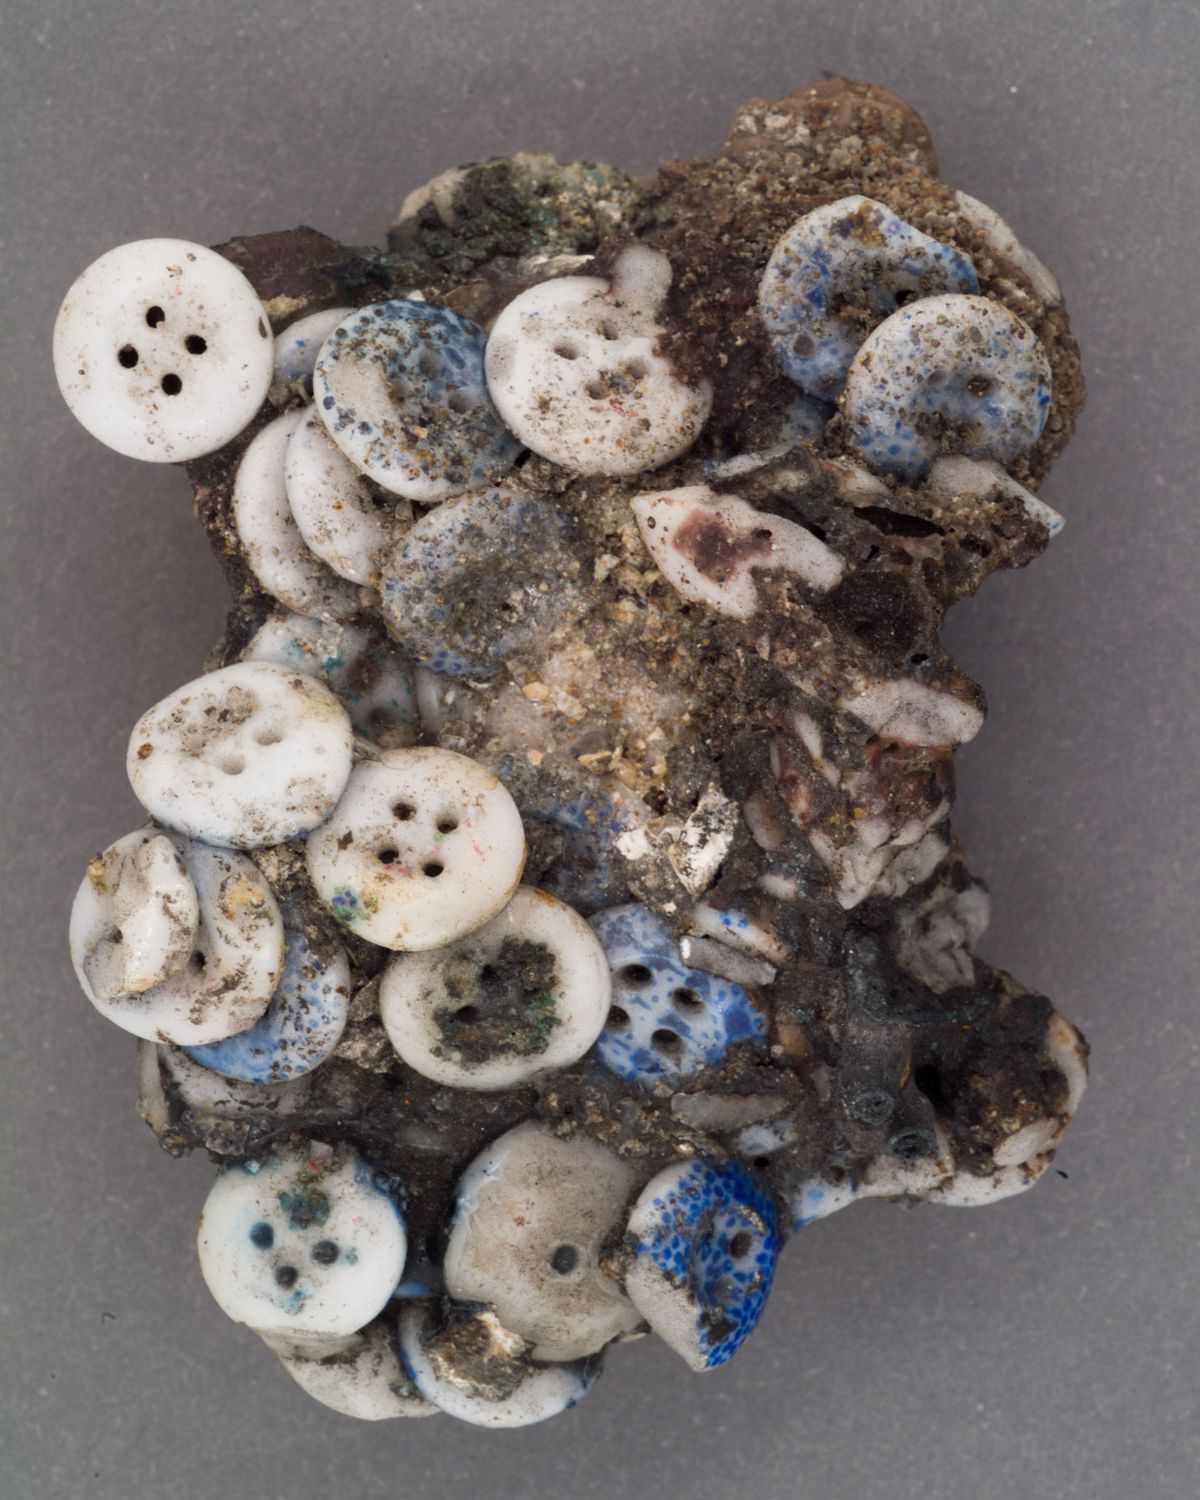 A clump of blue and white pearl clothing buttons fused together with mortar during the Great Chicago Fire in 1871.